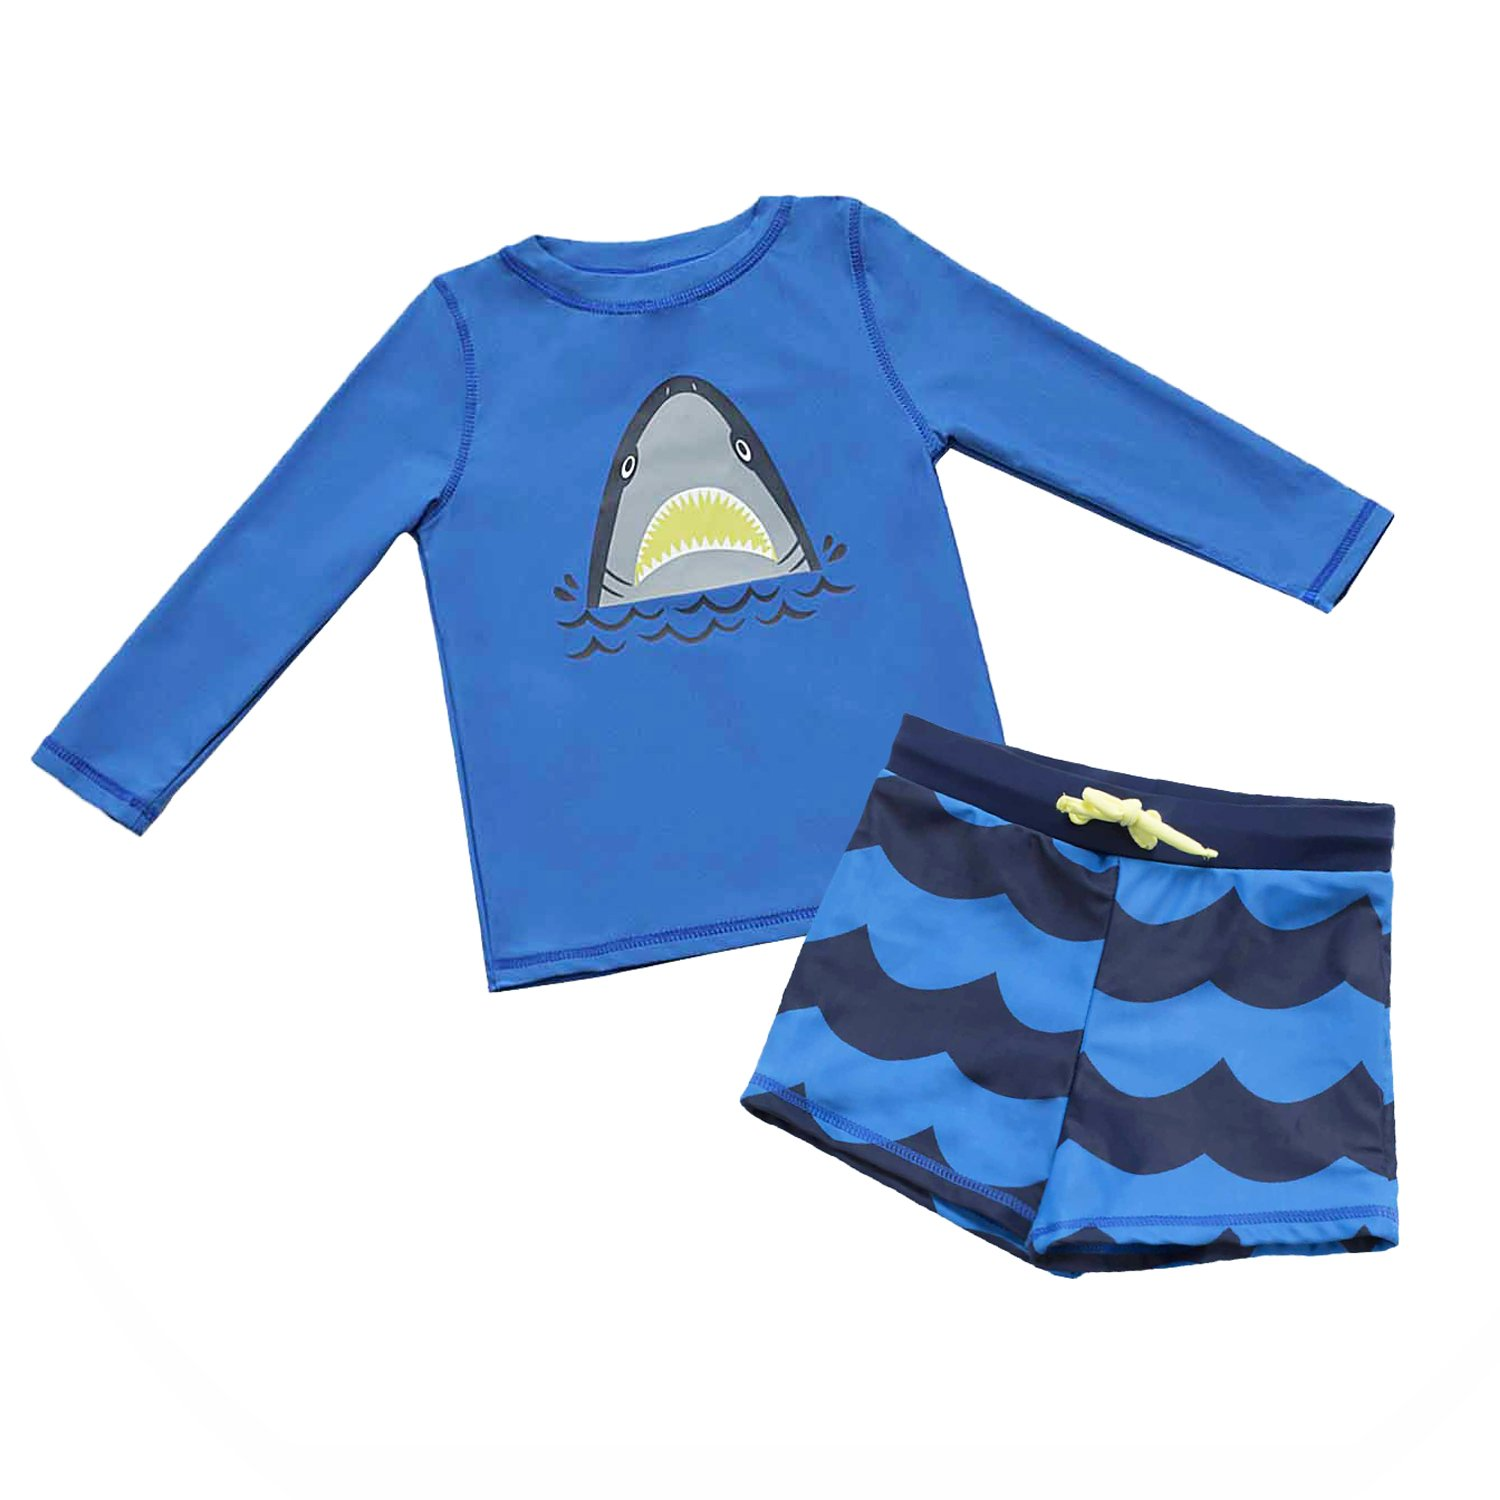 7-Mi Outdoor Swimwear Set Long Shirt and Short 2pcs Rash Guard Shirts 1 to 5 Years